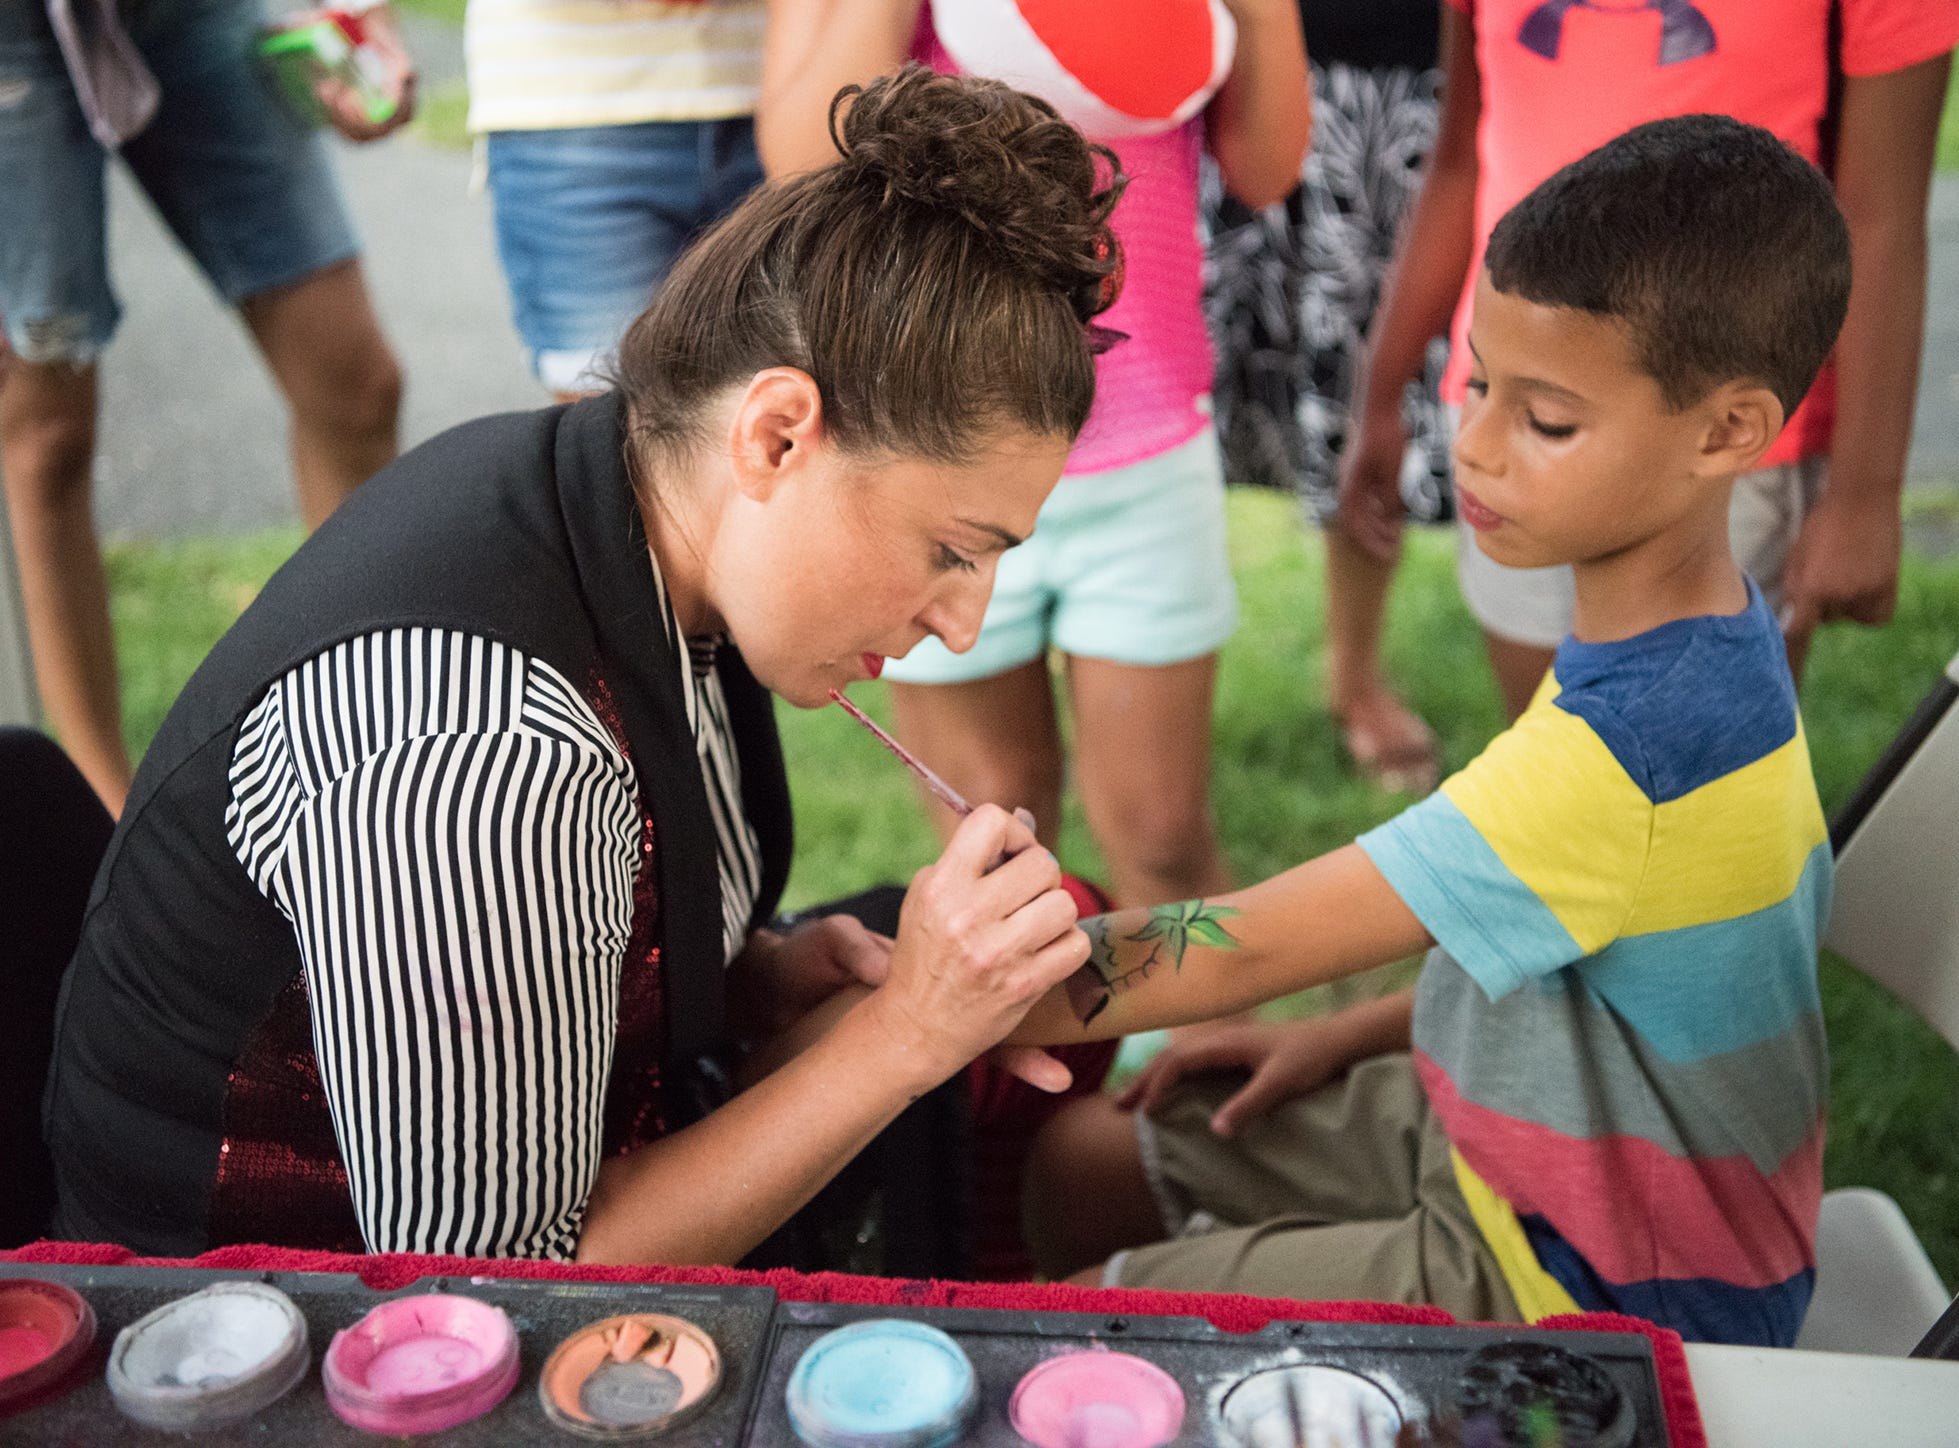 Mason Murphy gets a palm tree painted on his arm at Millburn's National Night Out at Taylor Park. Tuesday, August 7, 2018.